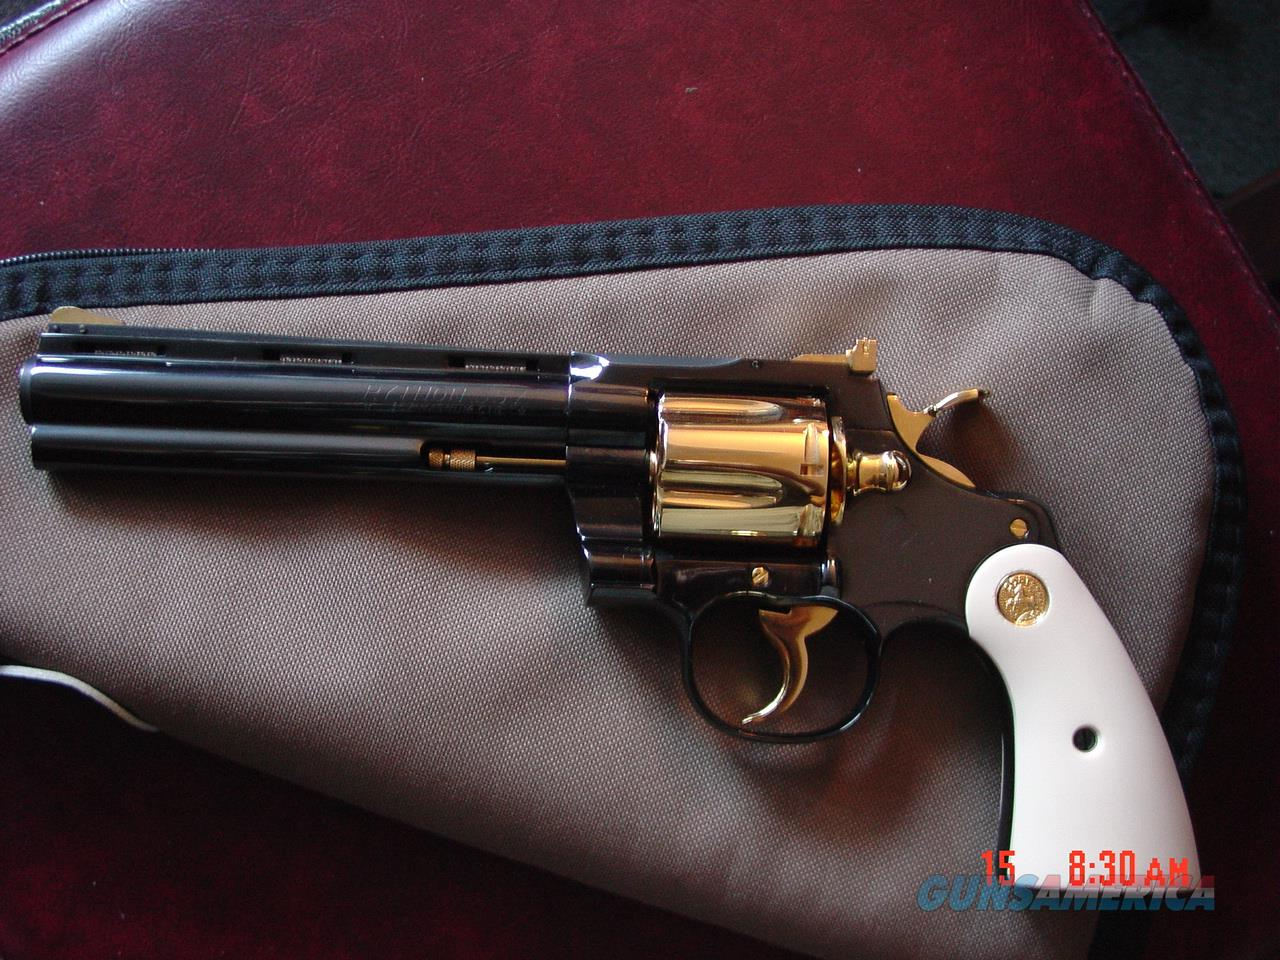 "Colt Python 6"" just refinished in bright blue with 24K gold accents,bonded ivory grips,awesome 1 of a kind showpiece !!  Guns > Pistols > Colt Double Action Revolvers- Modern"